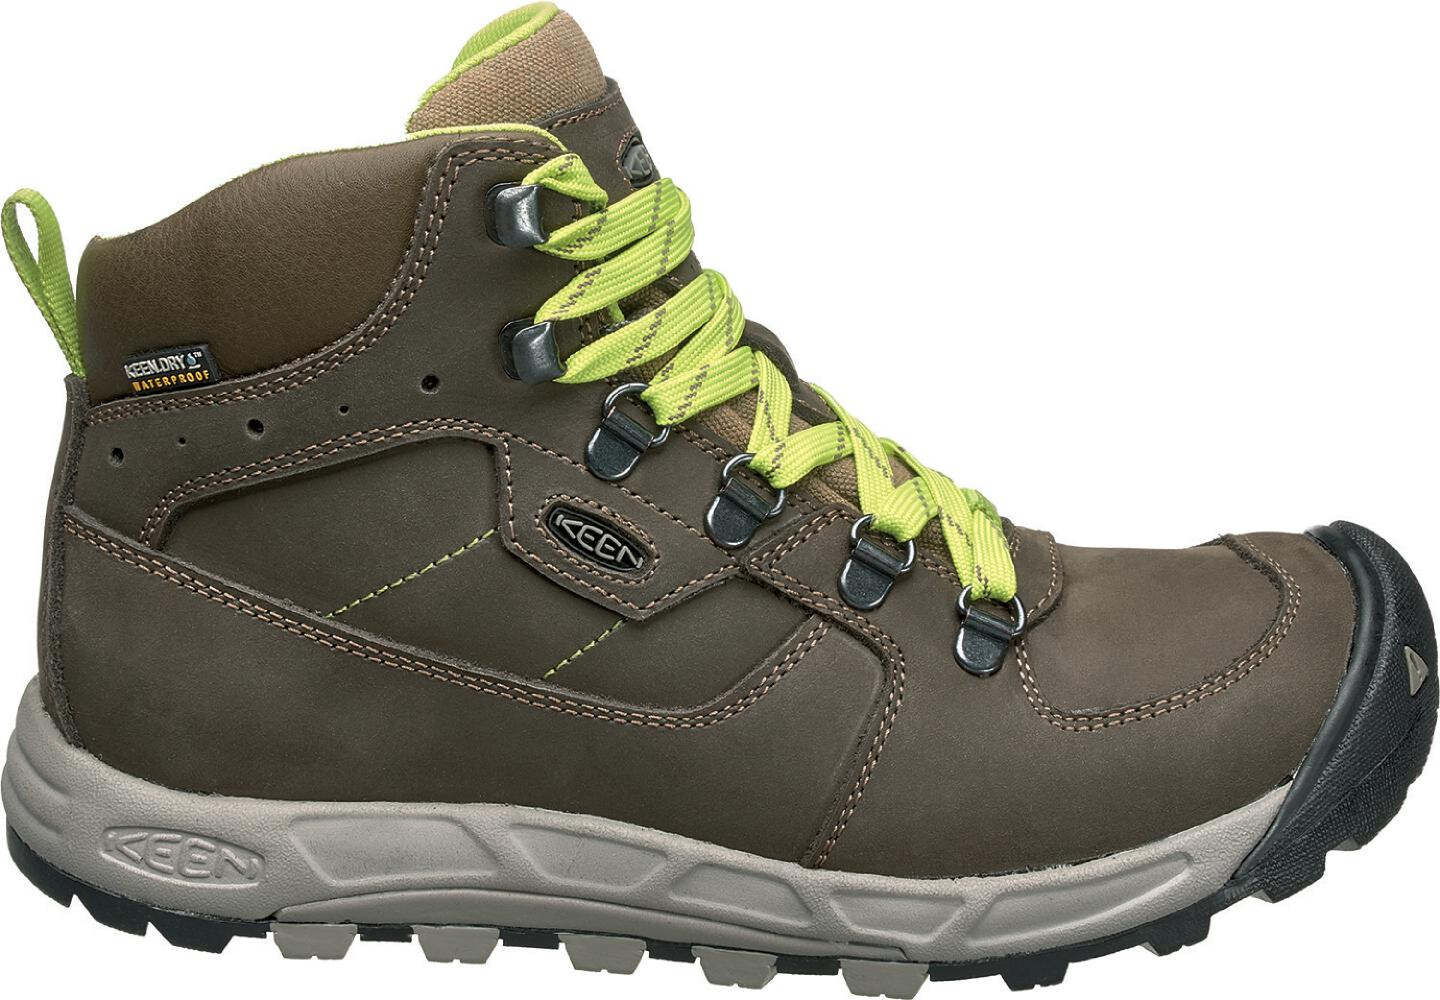 Keen Westward Leather WP Shoes Women brown at Addnature.co.uk e5becb88d5